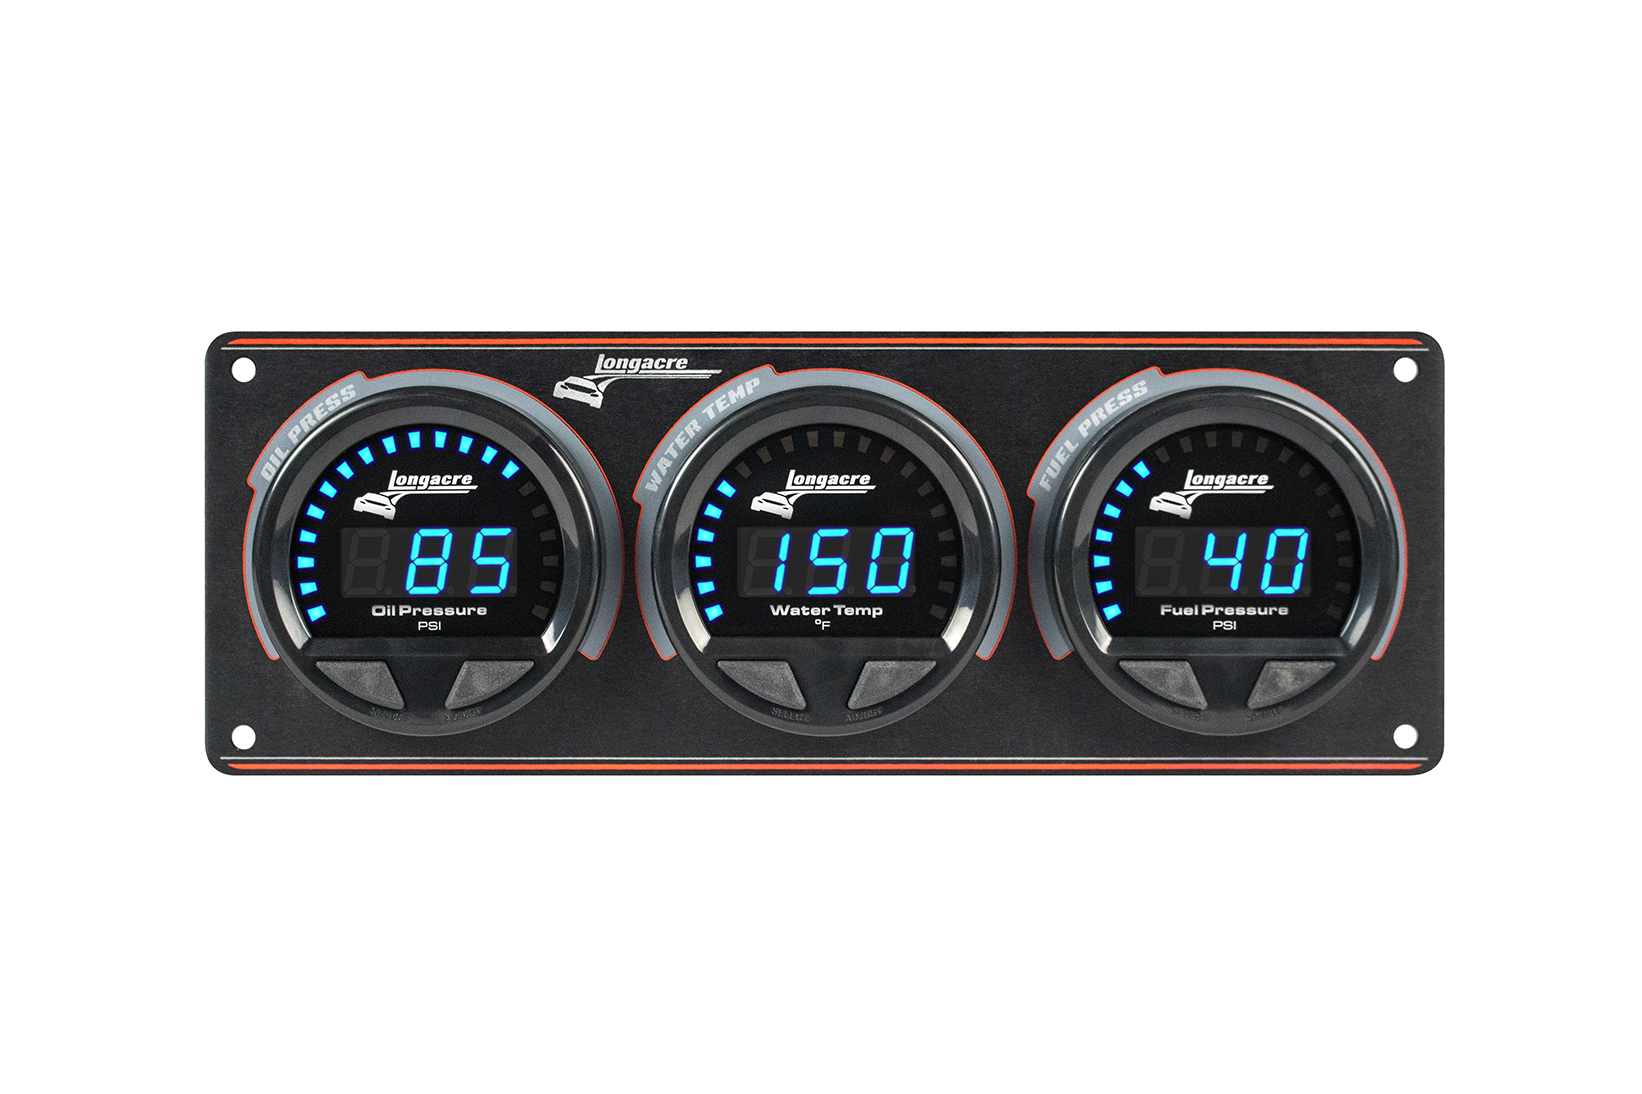 Digital Elite Waterproof Gauge Panel, 3 Gauge Oil Pressure/Water Temperature/Fuel Pressure 120psi